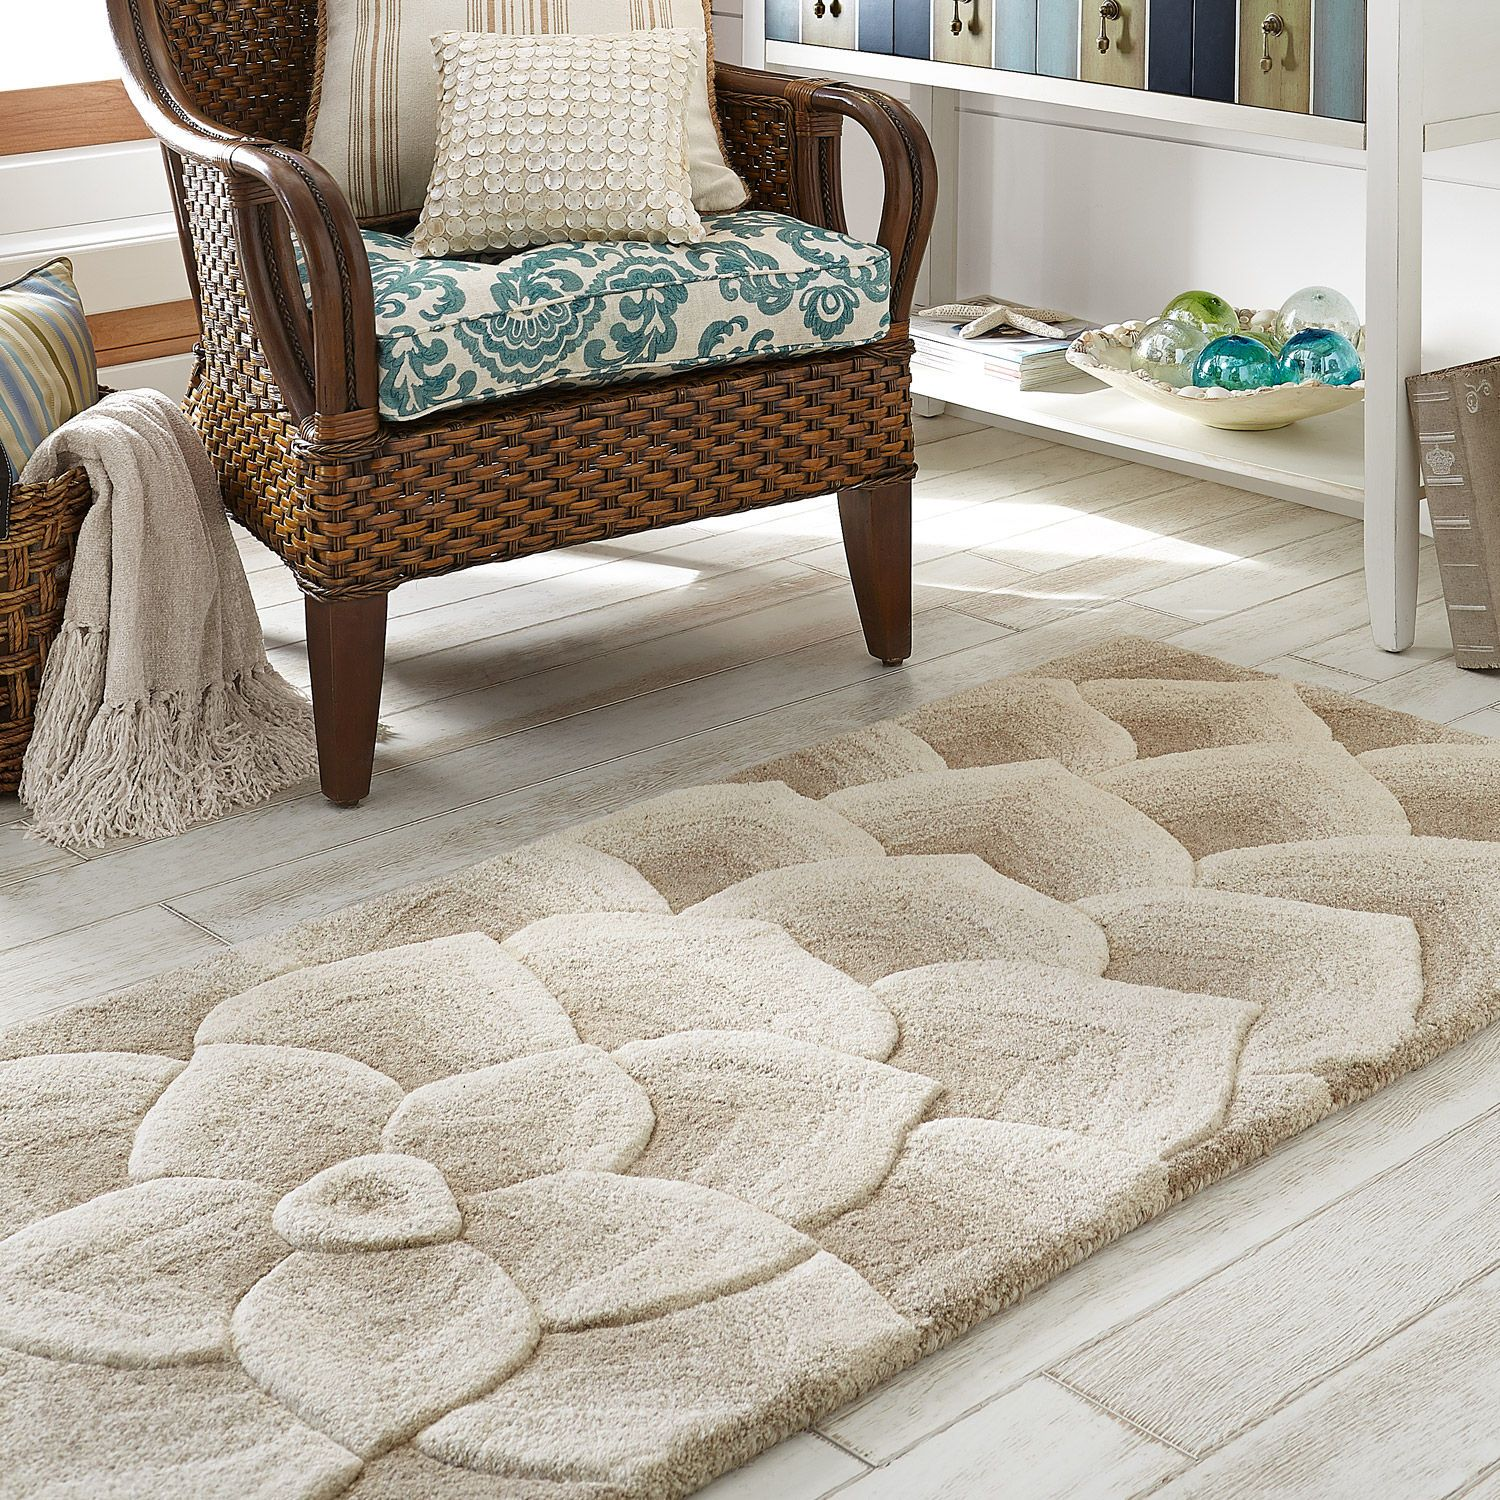 Rose Tufted Rugs Ivory Pier 1